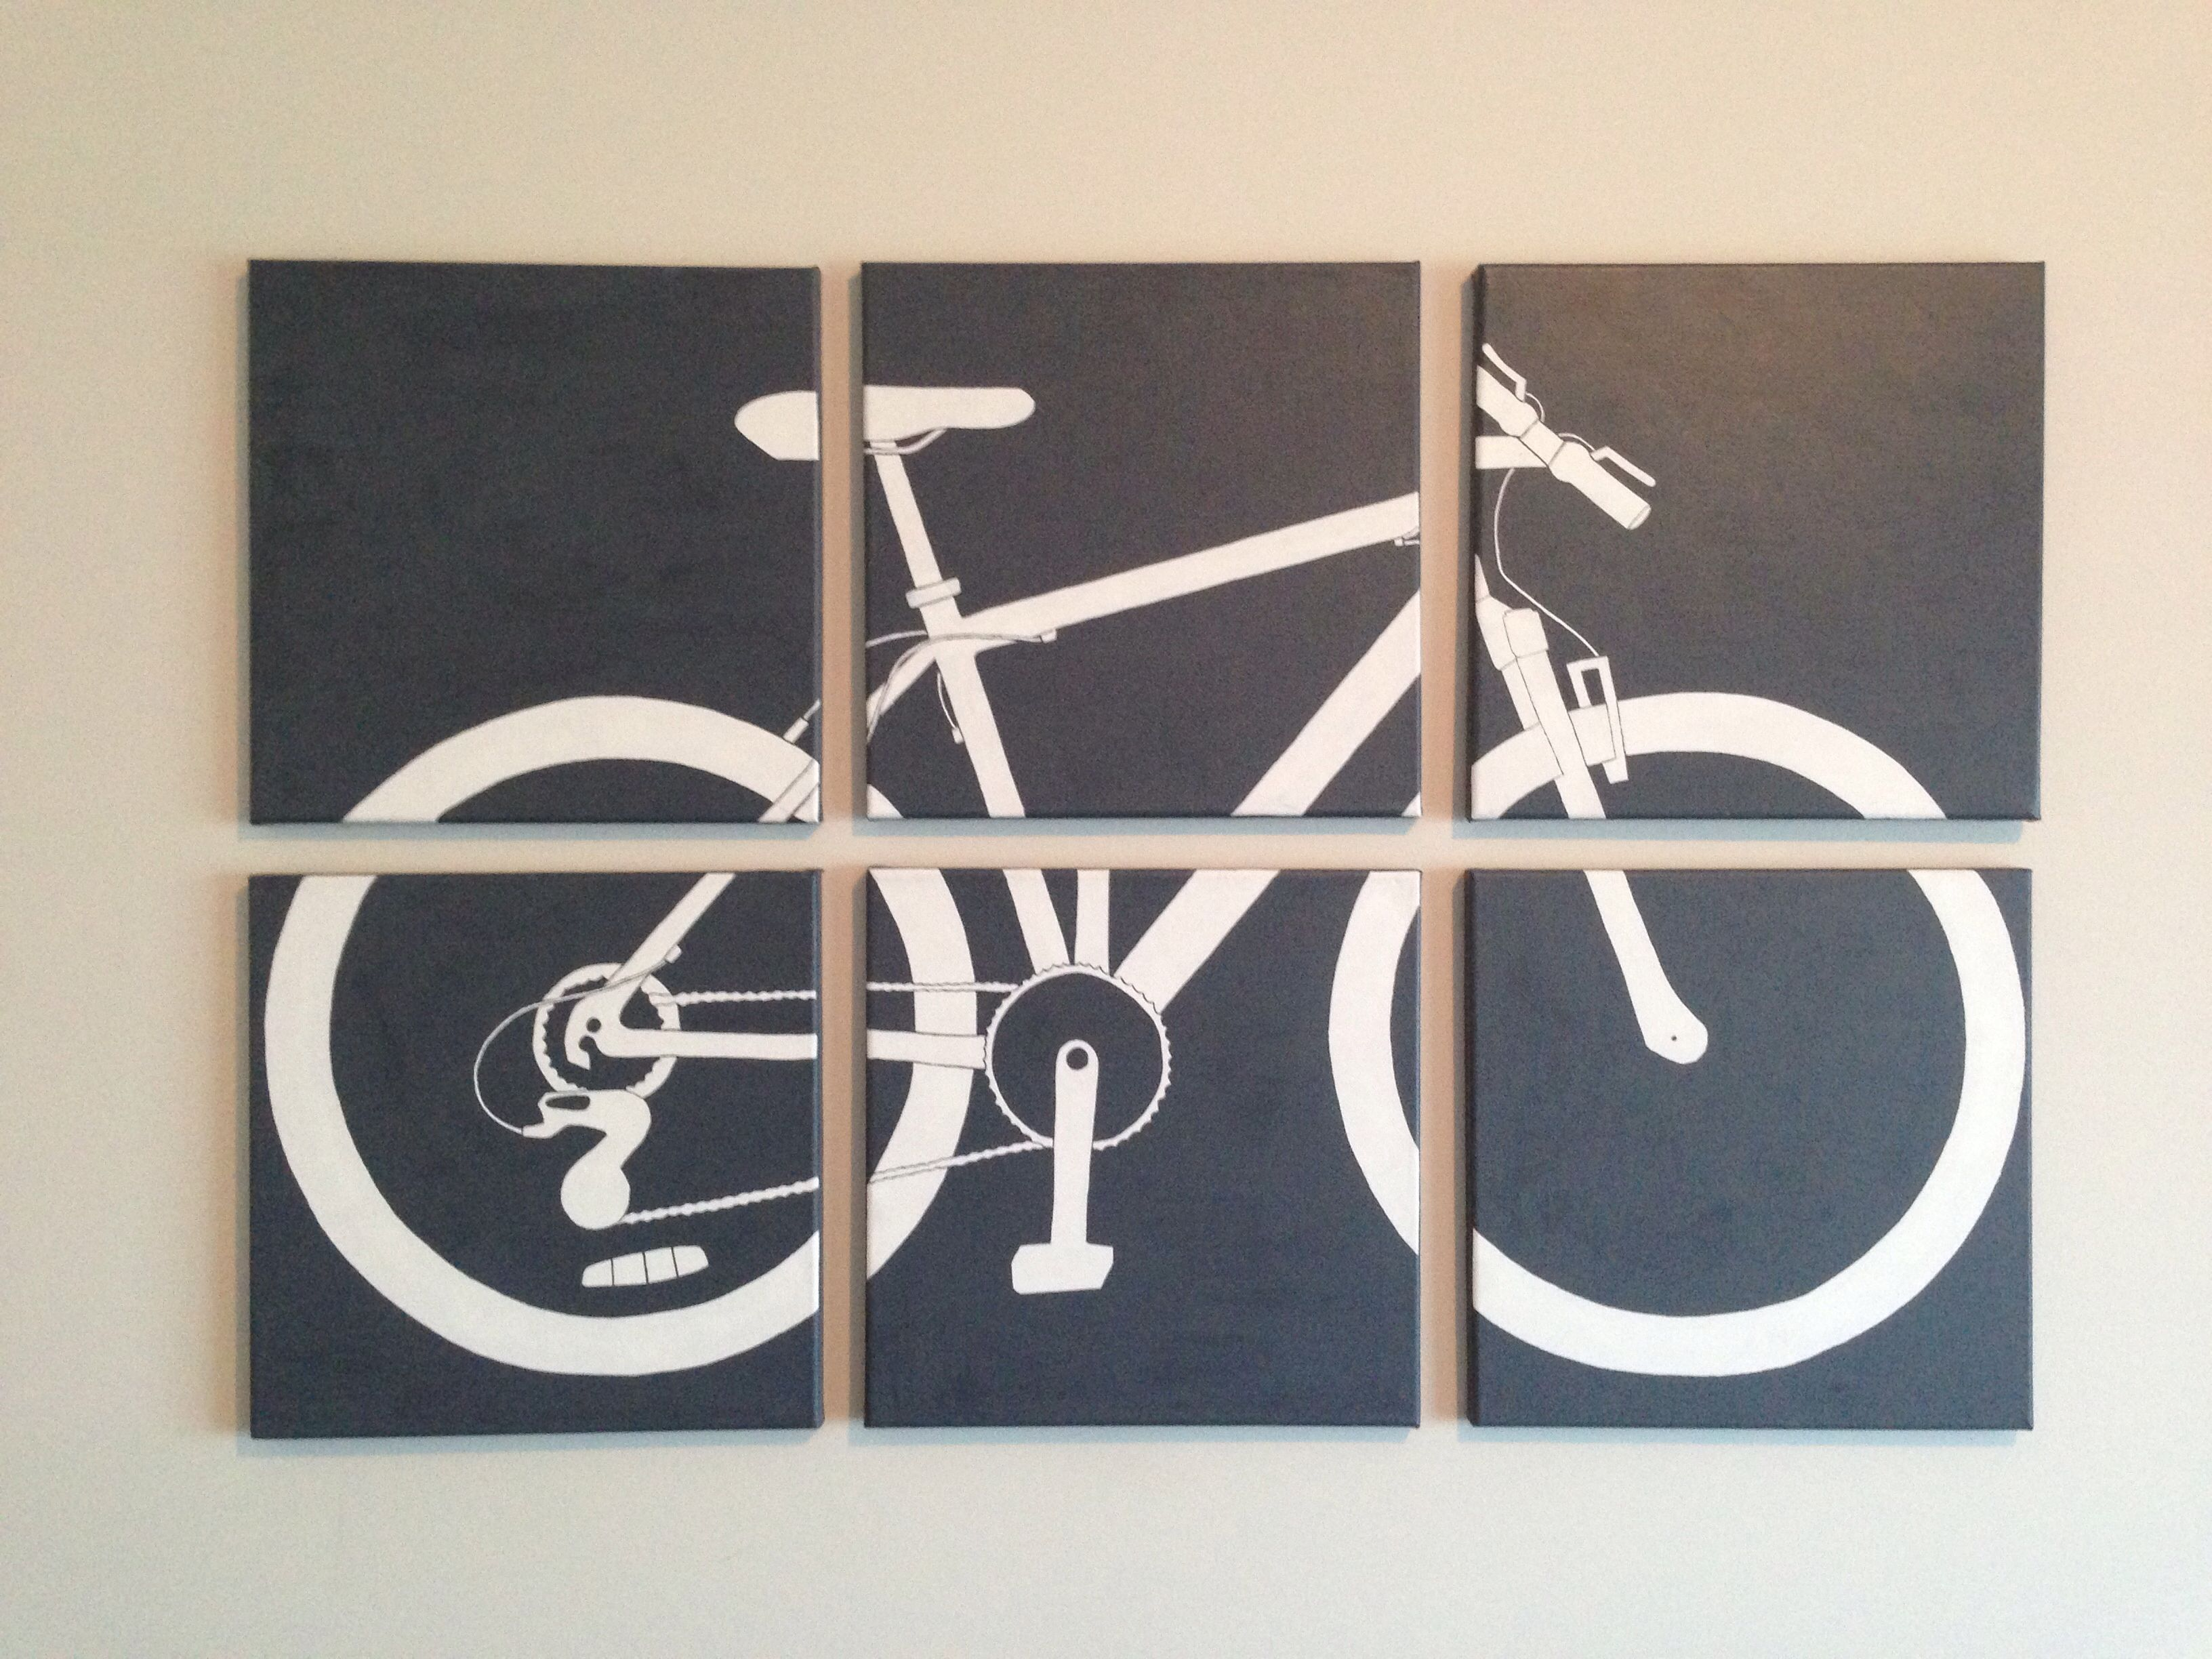 canvas walls manly things diy canvas decor crafts bike stuff diy art